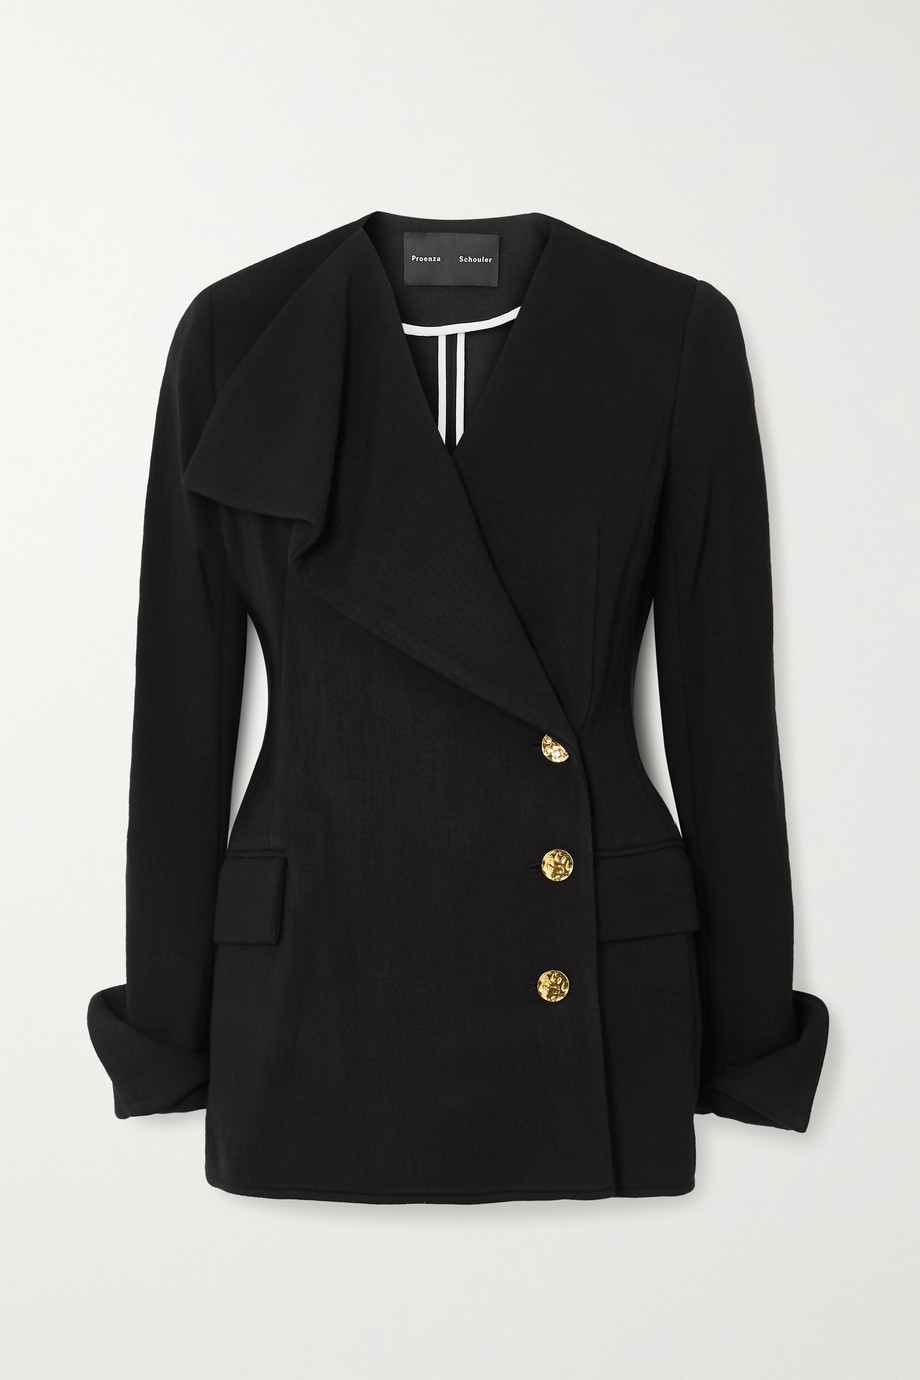 Proenza Schouler Double-breasted draped stretch-jersey blazer